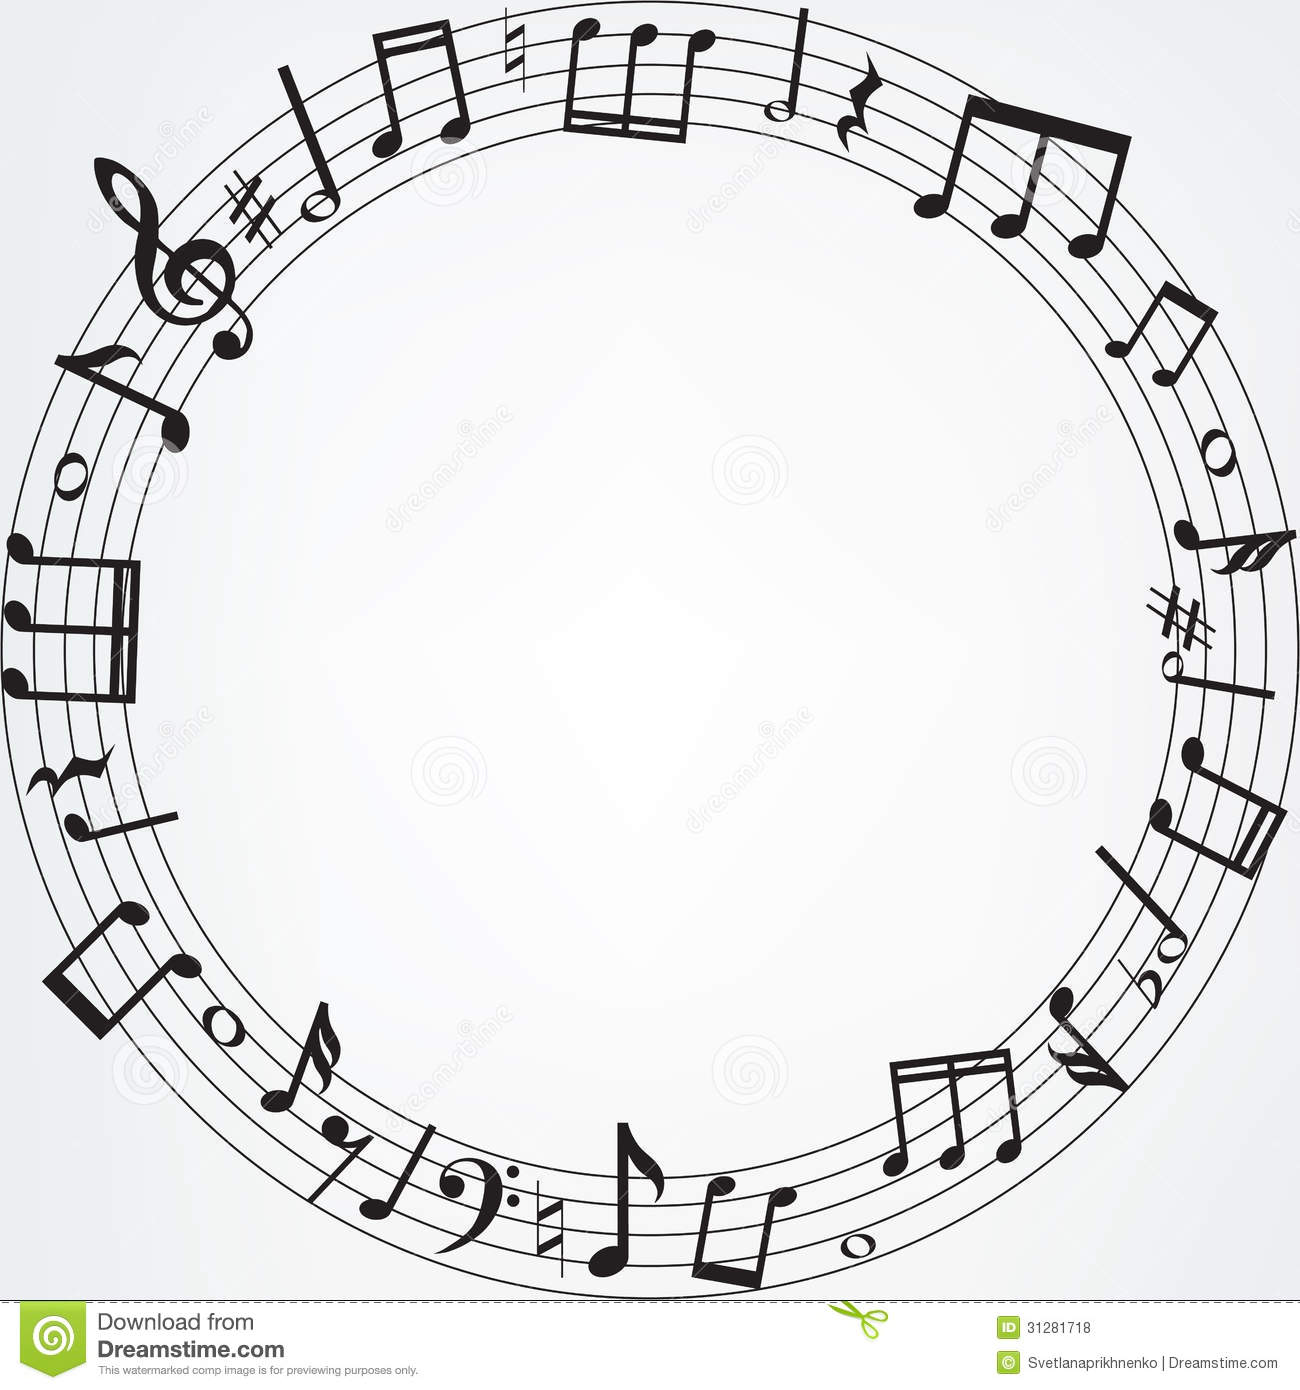 Clipart music notes music notes background clipart and free music - Music 20notes 20border 20clipart